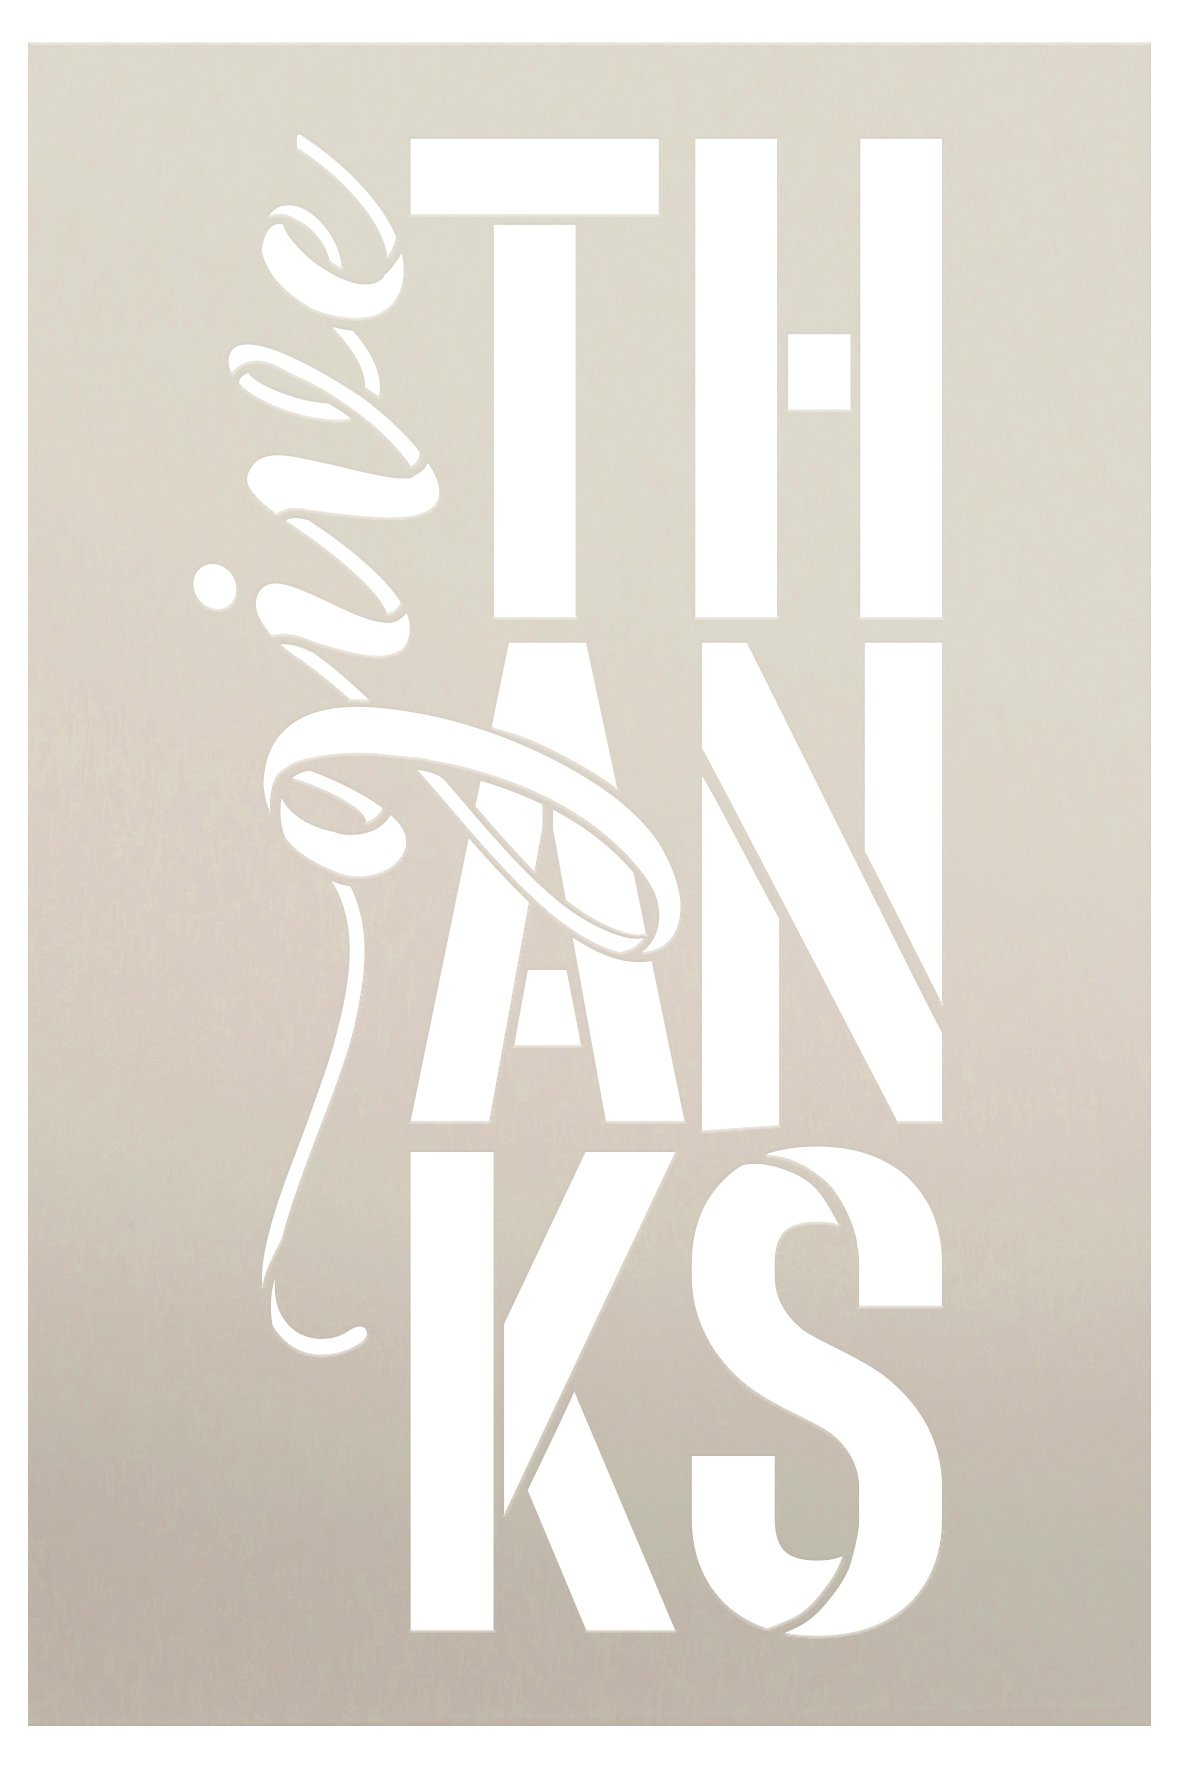 Give Thanks Letter Stack Stencil by StudioR12   Craft DIY Fall Autumn Thanksgiving Home Decor   Paint Wood Sign Reusable Mylar Template   Select Size